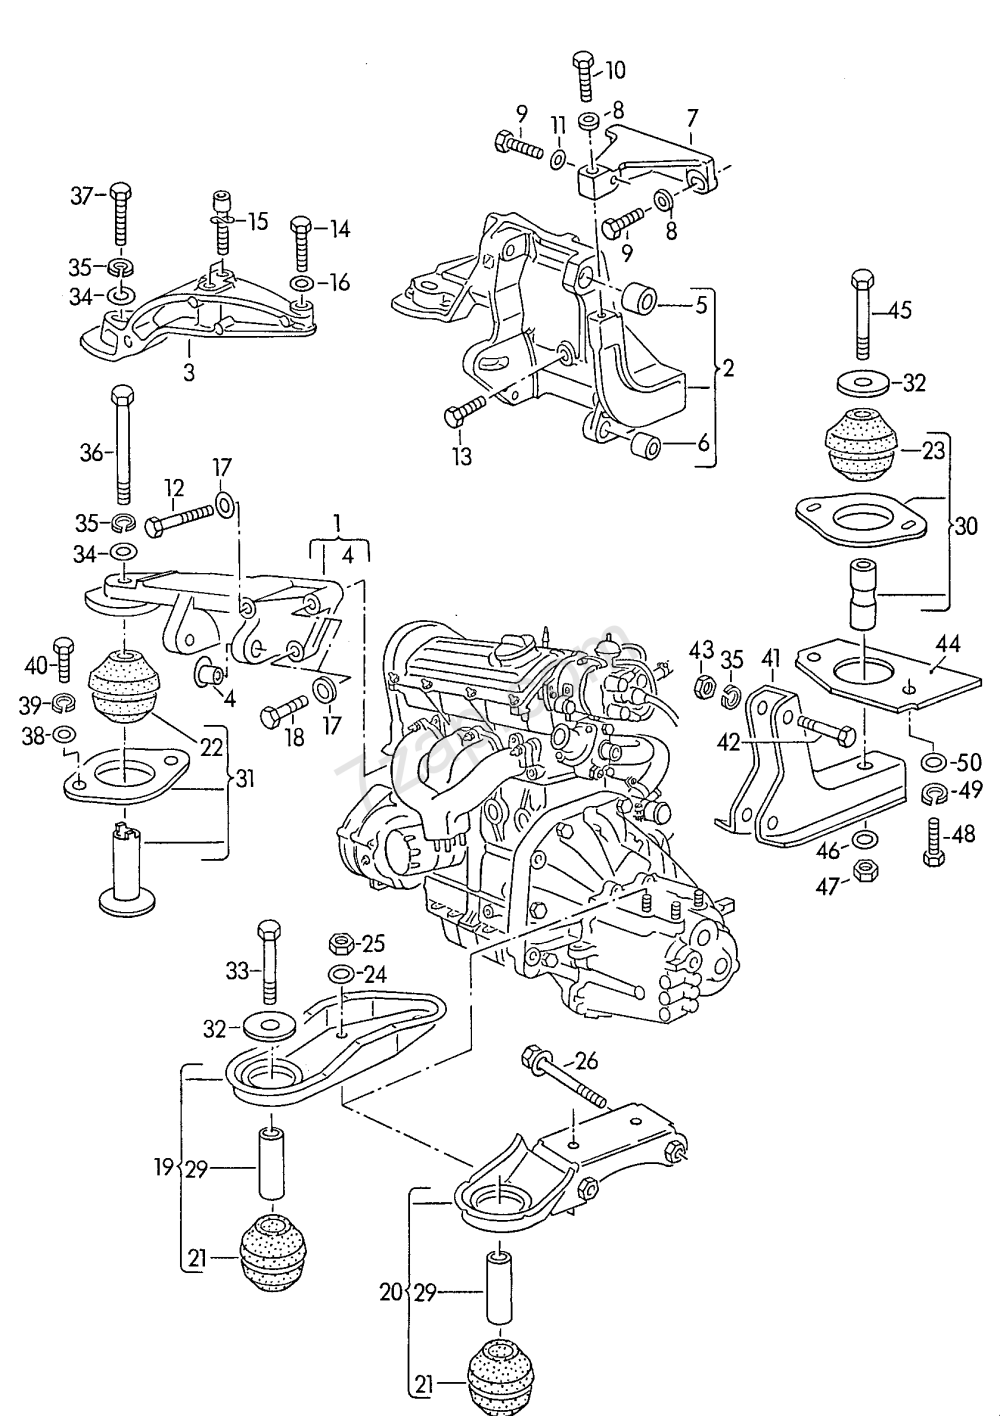 medium resolution of vw derby 2 0 engine diagram within diagram wiring and 1972 vw beetle wiring diagram vw 1 8 engine diagram